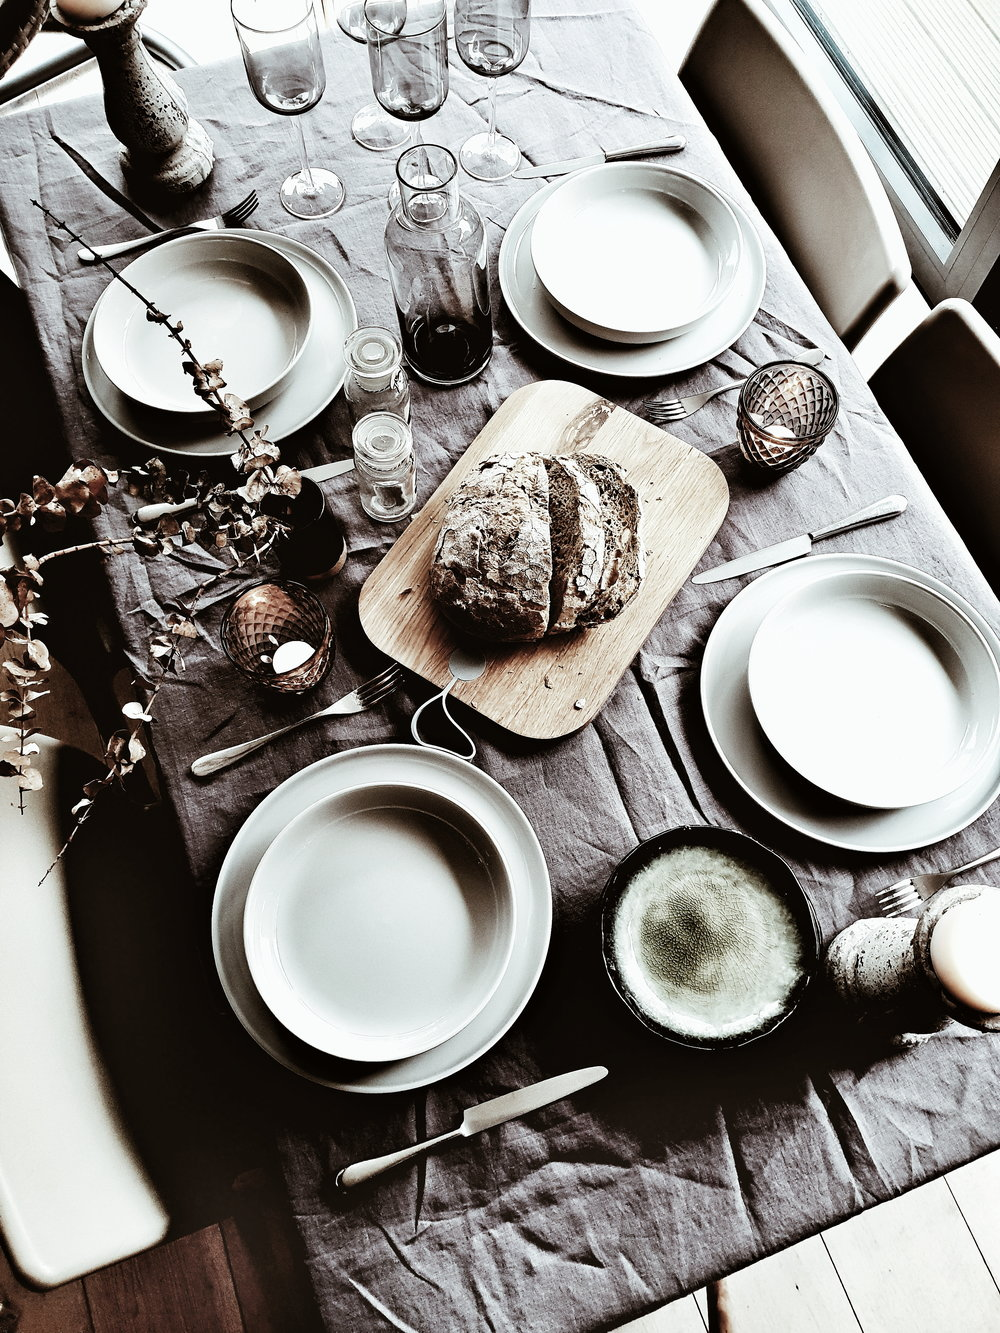 Tablescape set and ready to receive food! I love how the simple minimal scandi style of the tableware and glasses works against vintage items that I added to the table to create texture and warmth